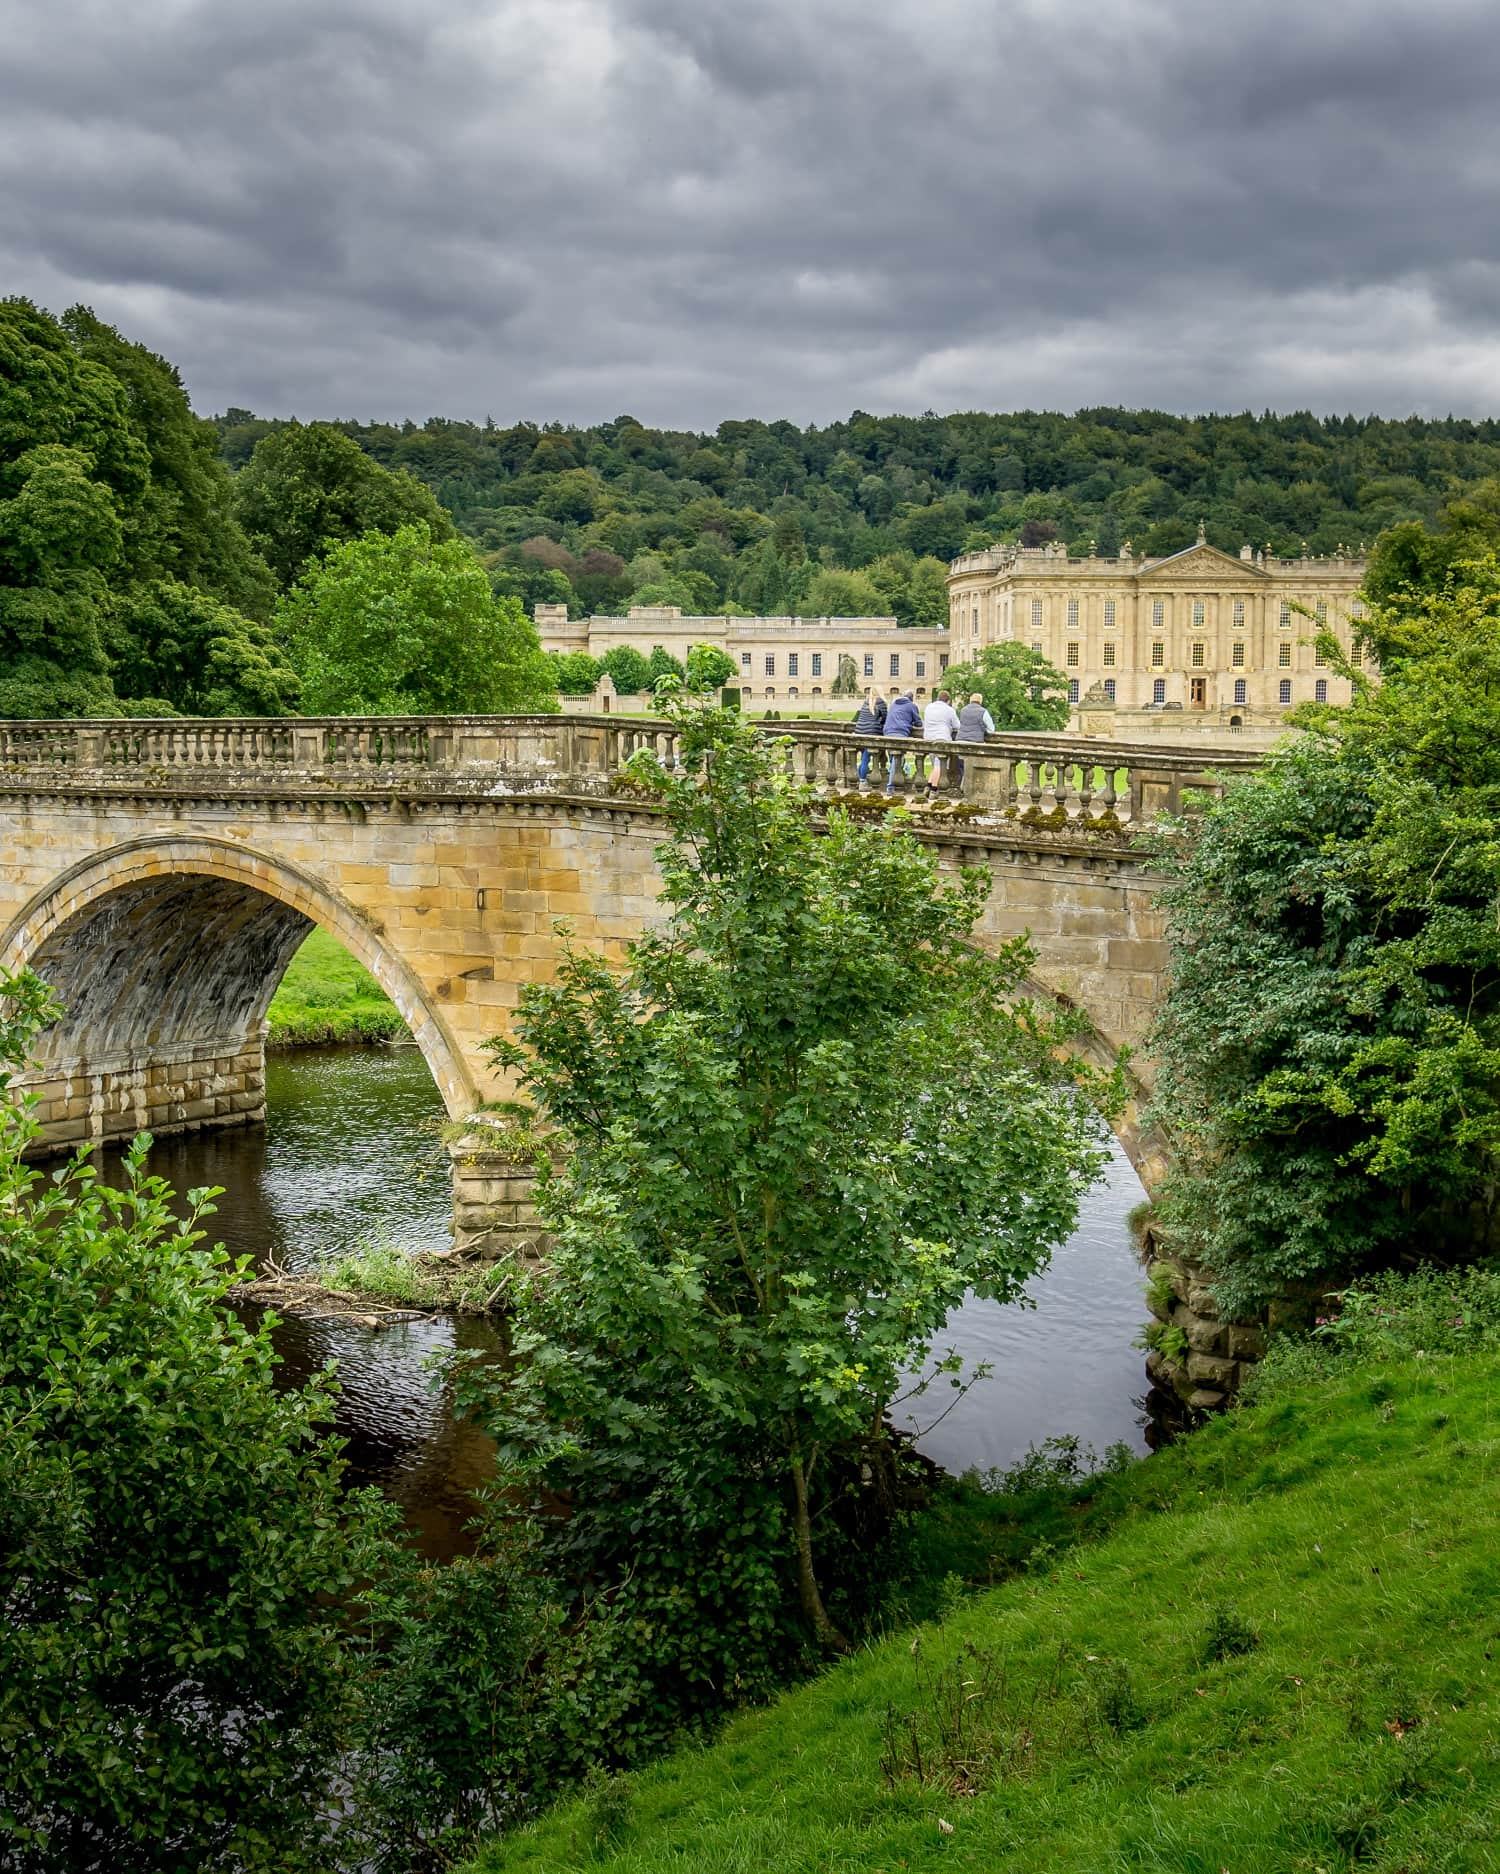 bridge over the River Derwent looking towards Chatsworth House